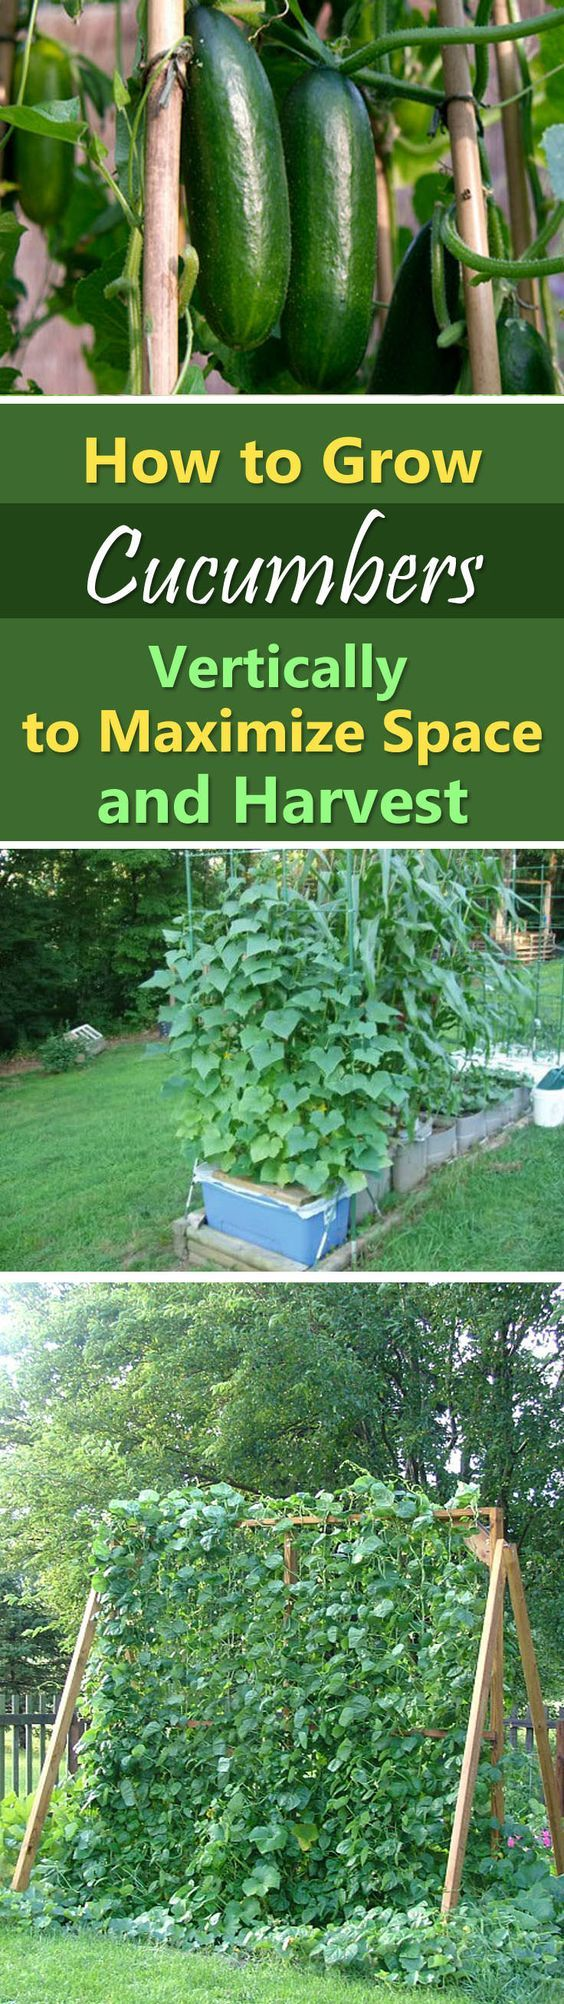 Growing Cucumbers Vertically   How to Grow Cucumbers in Small Garden: